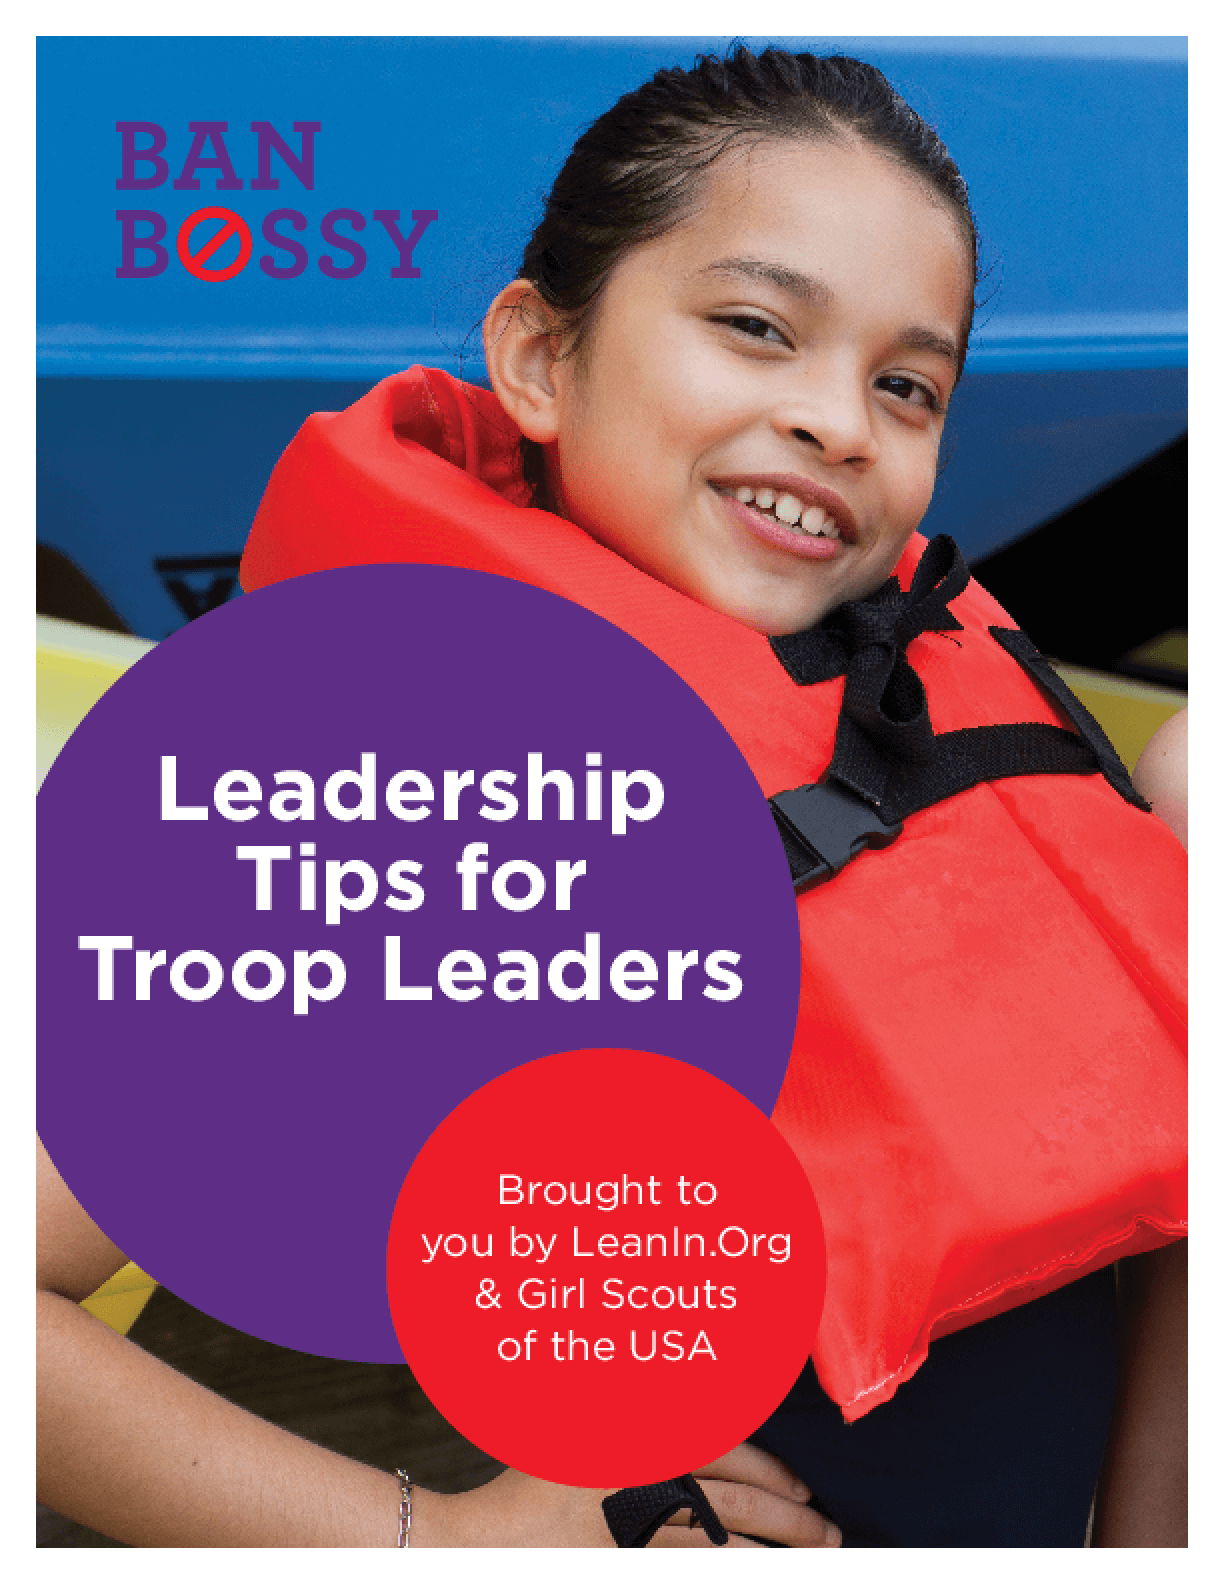 Ban Bossy: Leadership Tips for Troop Leaders